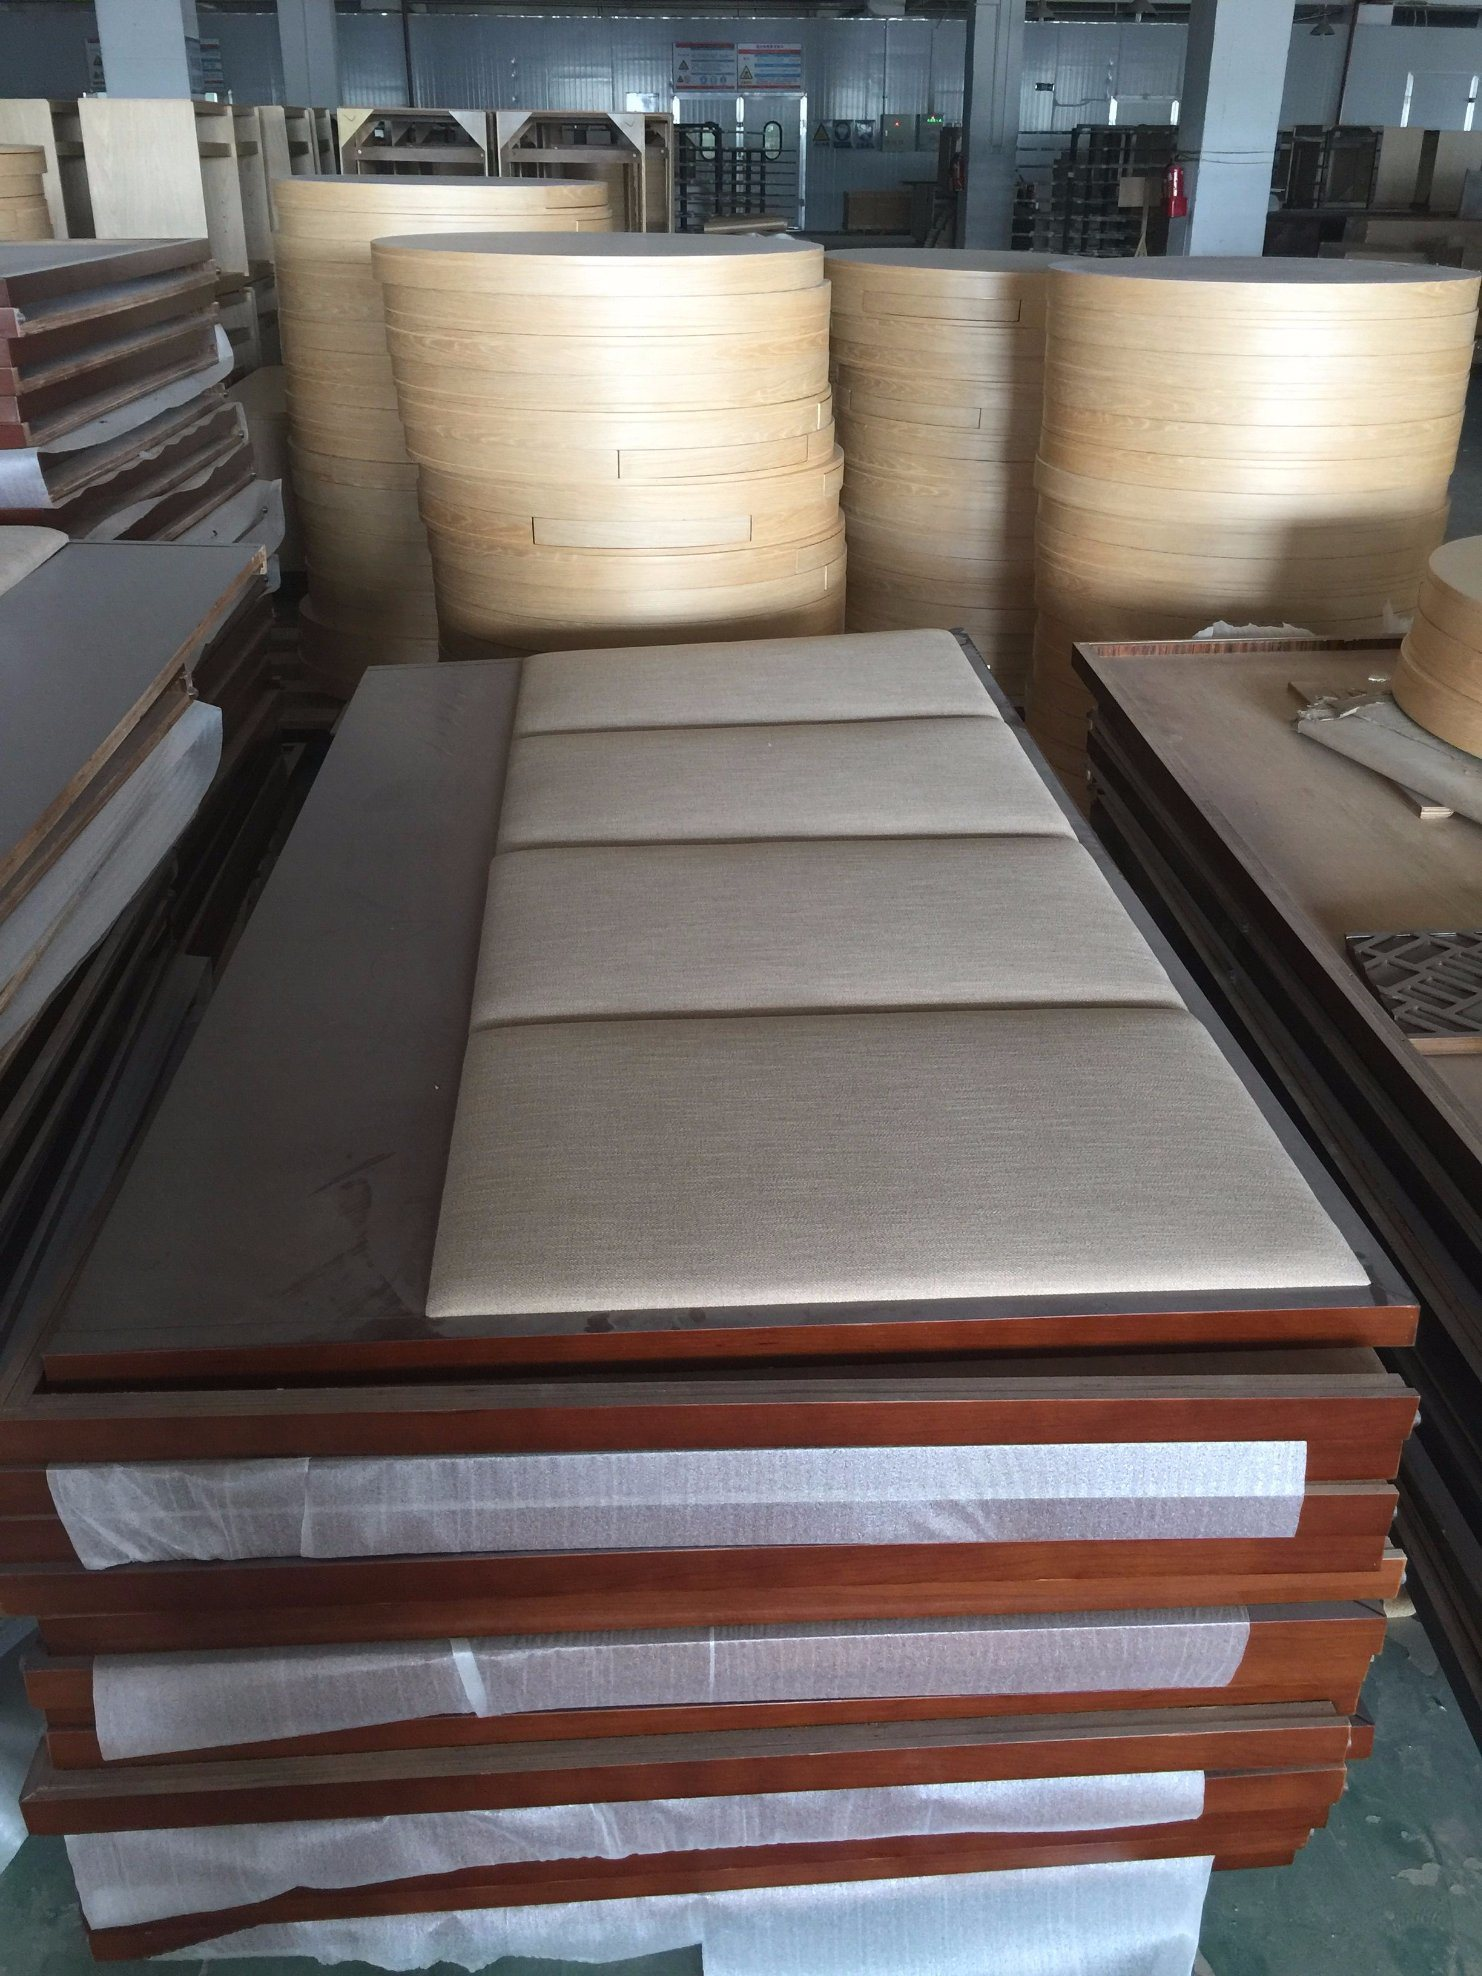 Foshan Luxury Hotel Bedroom Furniture/Luxury Kingsize Bedroom Furniture/Commercial Hotel Furniture/Double Hospitality Guest Room Furniture (CRHN-00178)